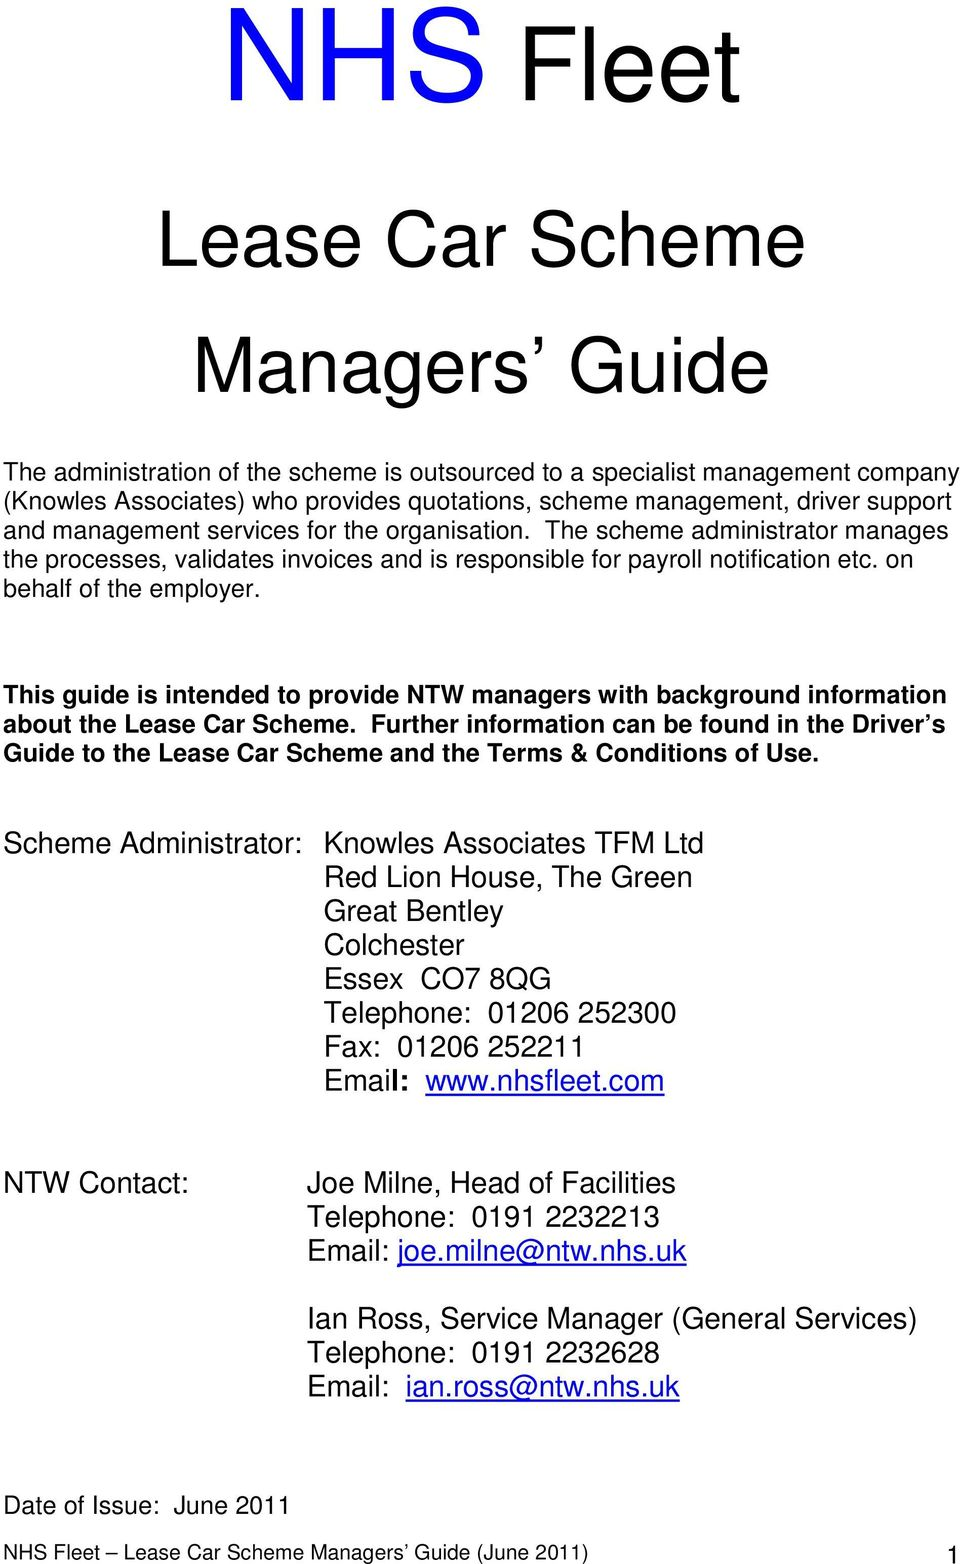 This guide is intended to provide NTW managers with background information about the Lease Car Scheme.